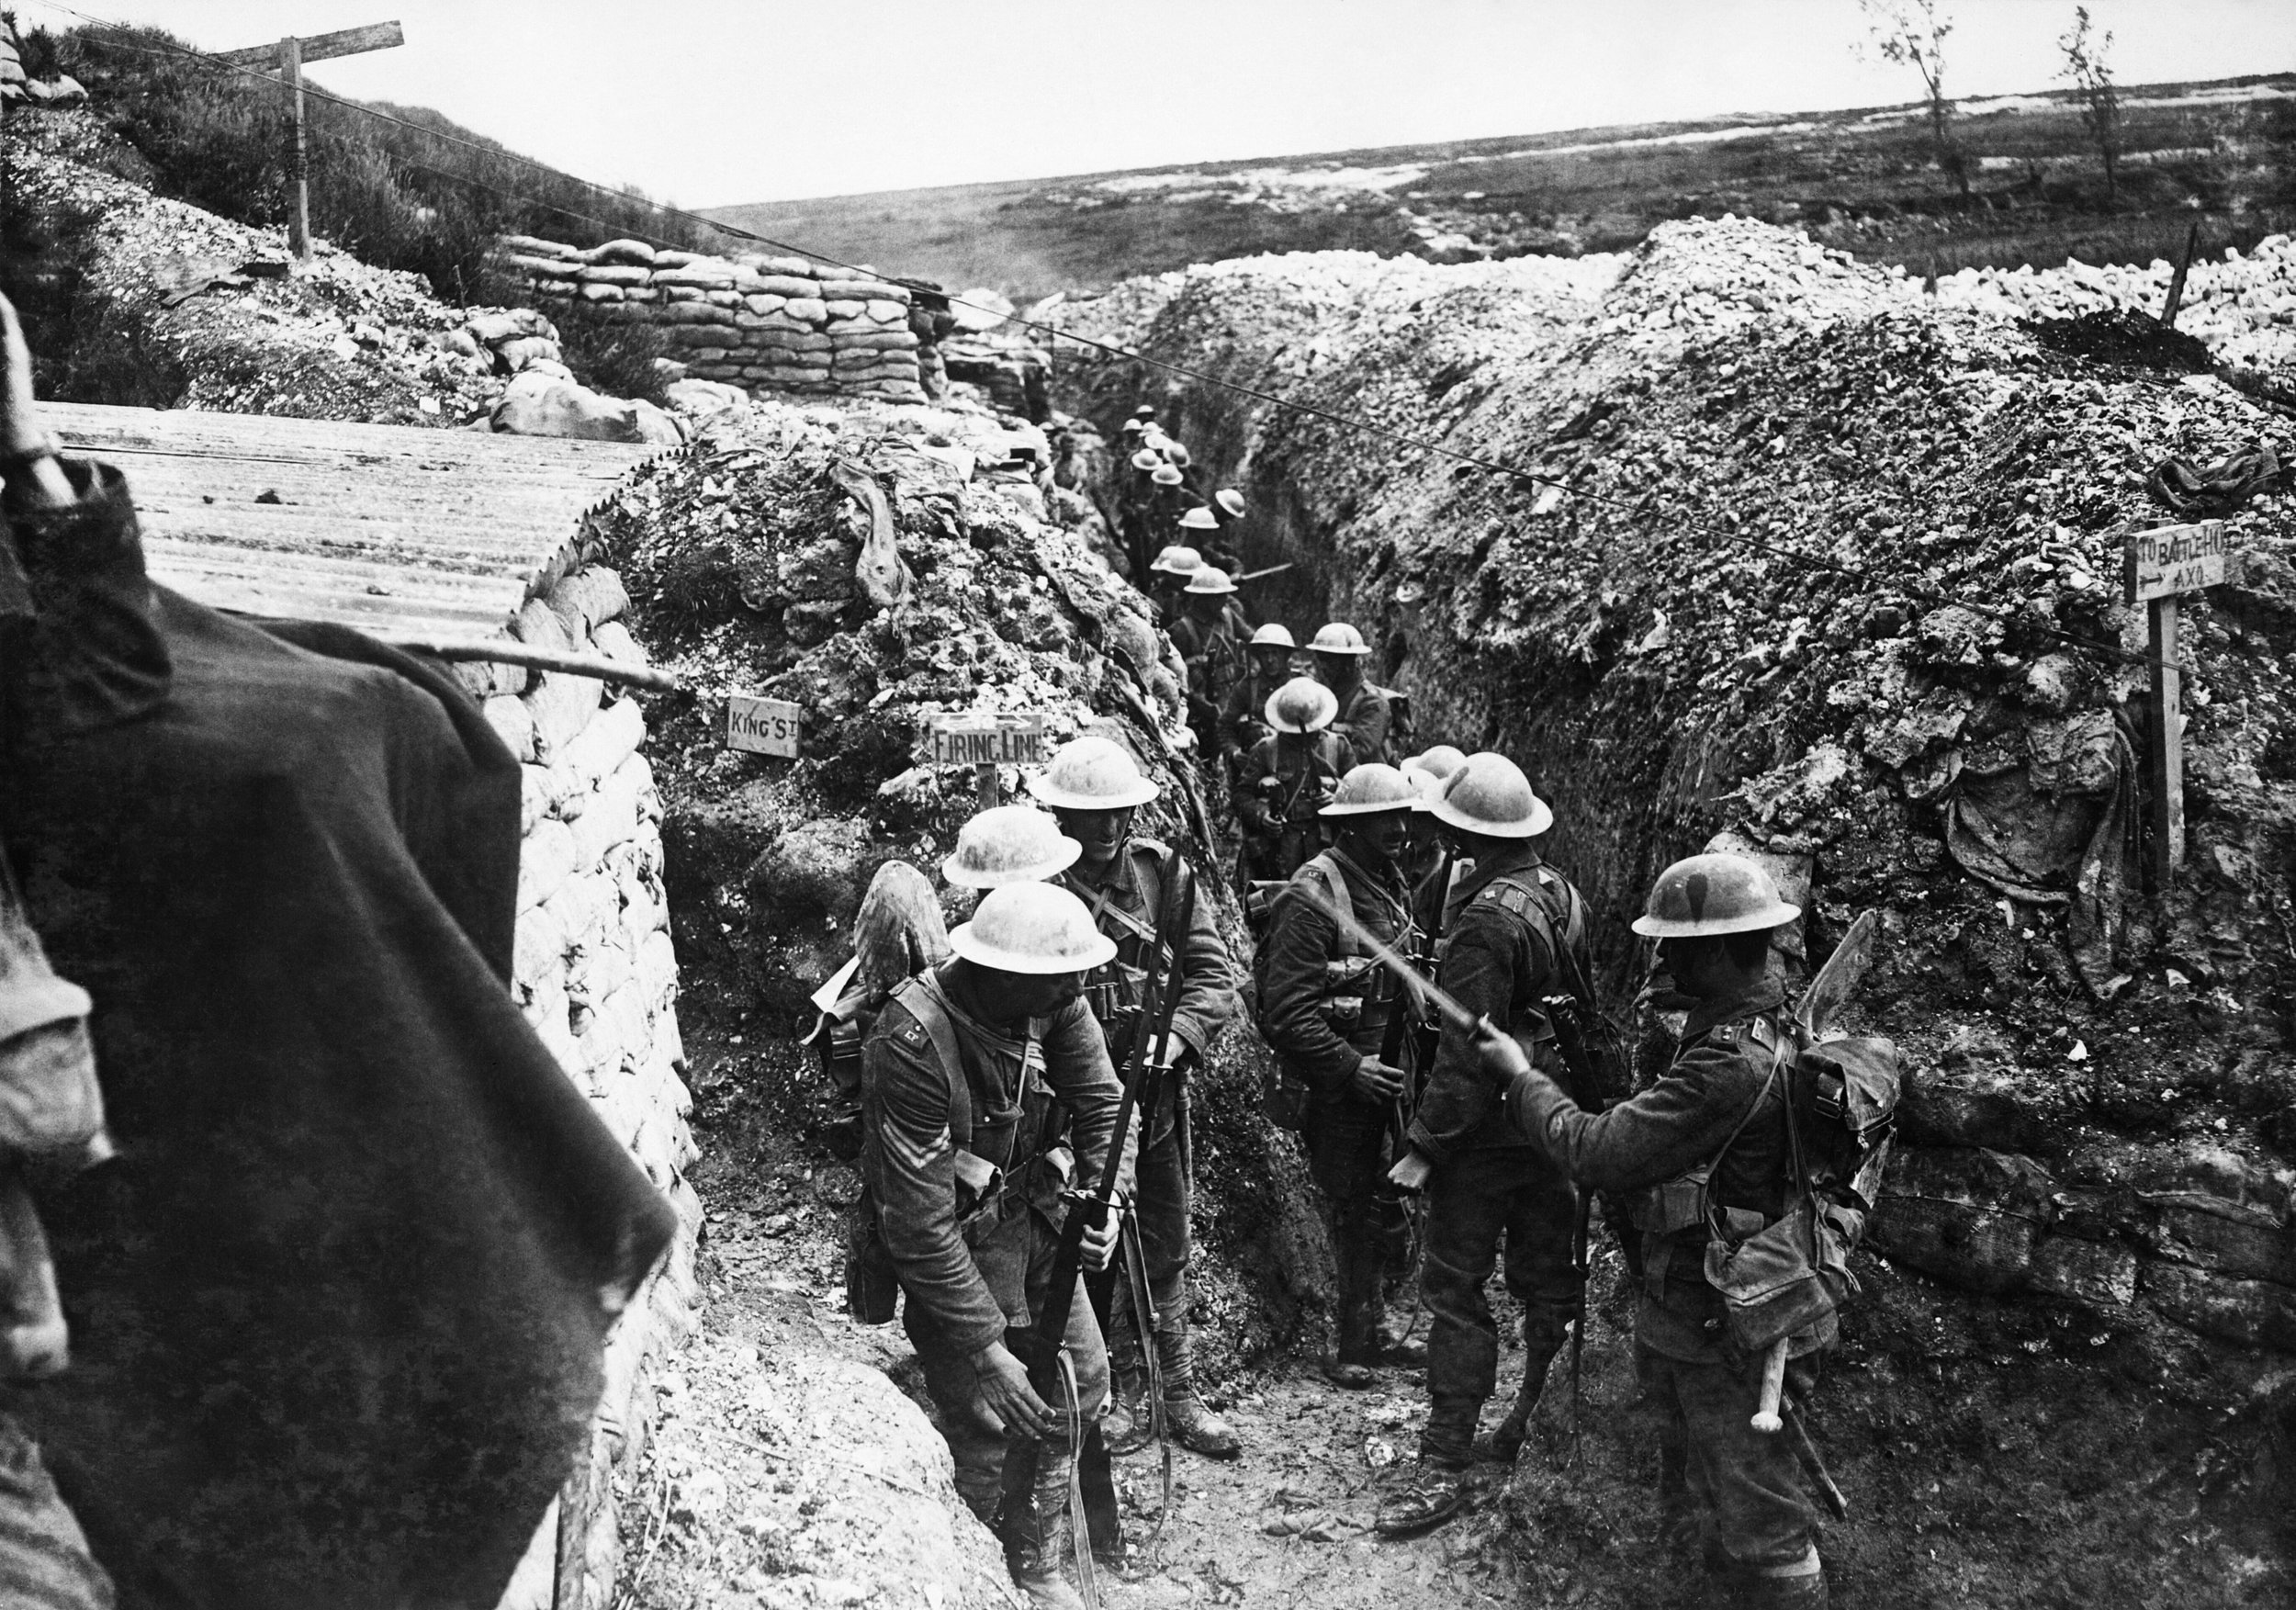 1st Lancashire Fusiliers, in communication trench near Beaumont Hamel, Somme, 1916. Photo by Ernest Brooks